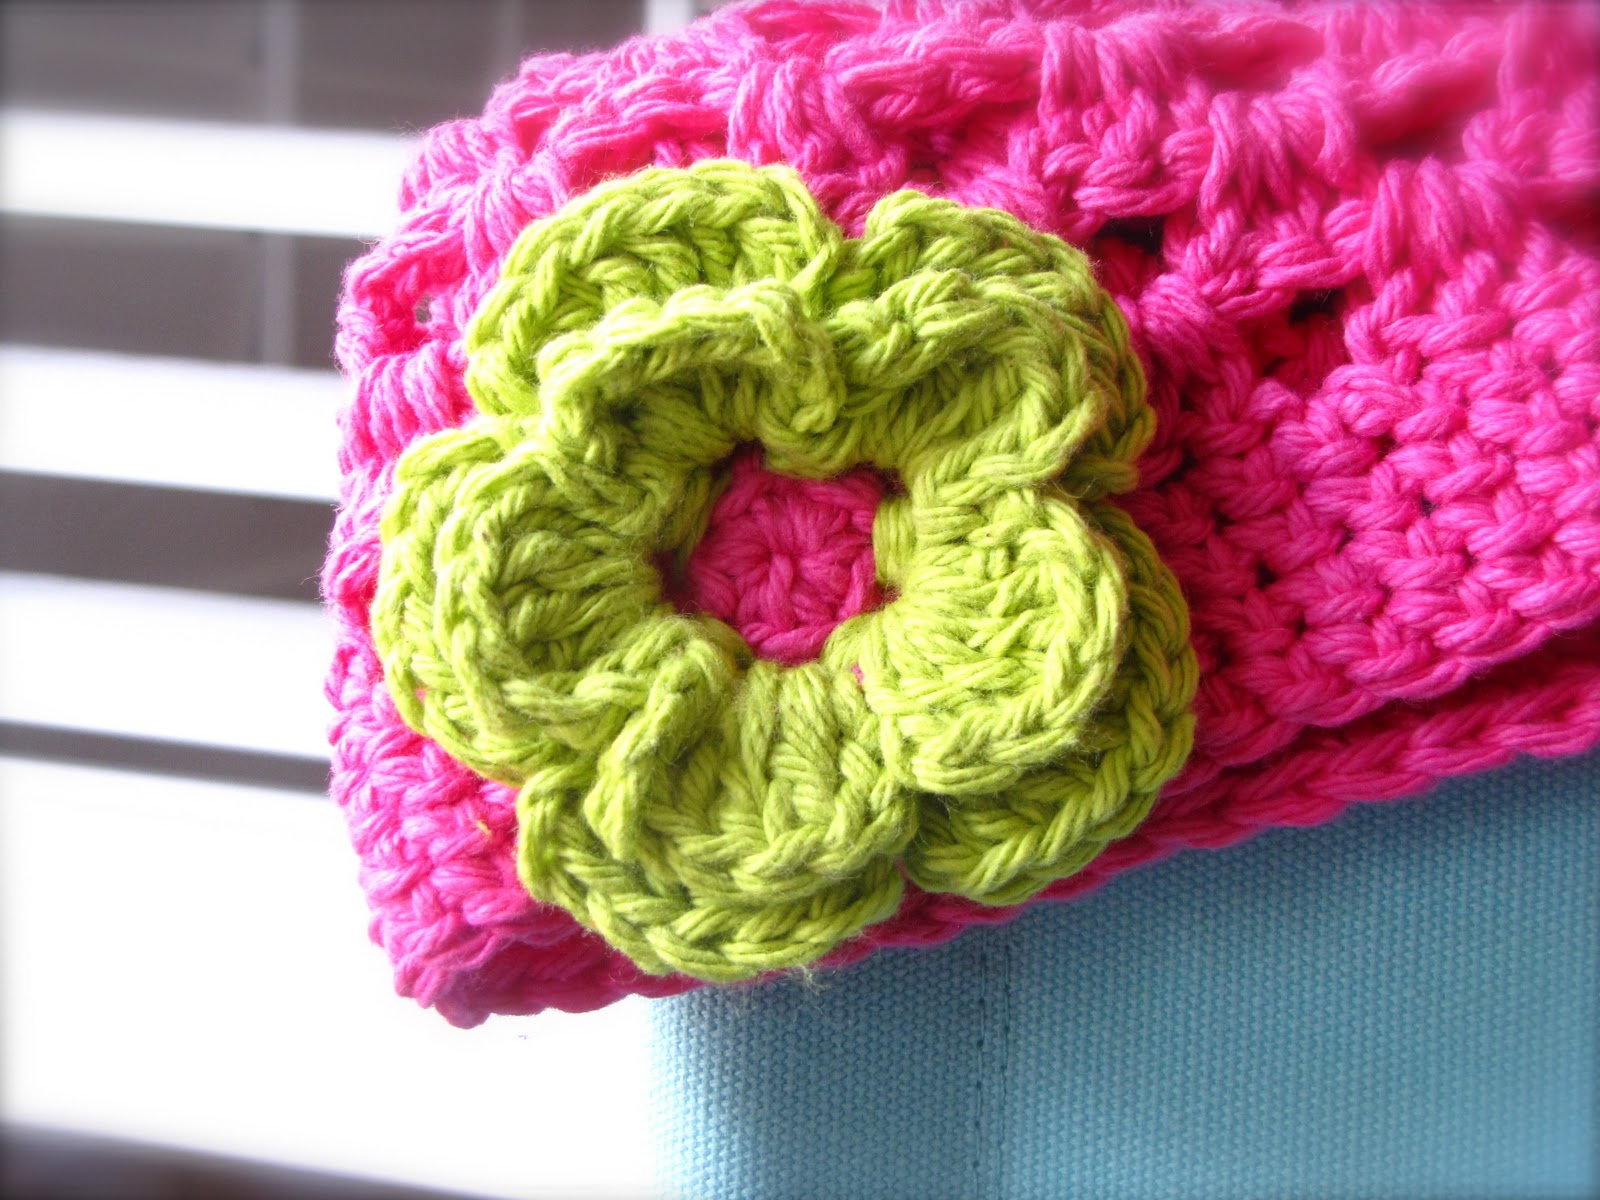 Crochet A Flower : Double Layer Daisy Crochet Pattern - Daisy Cottage Designs